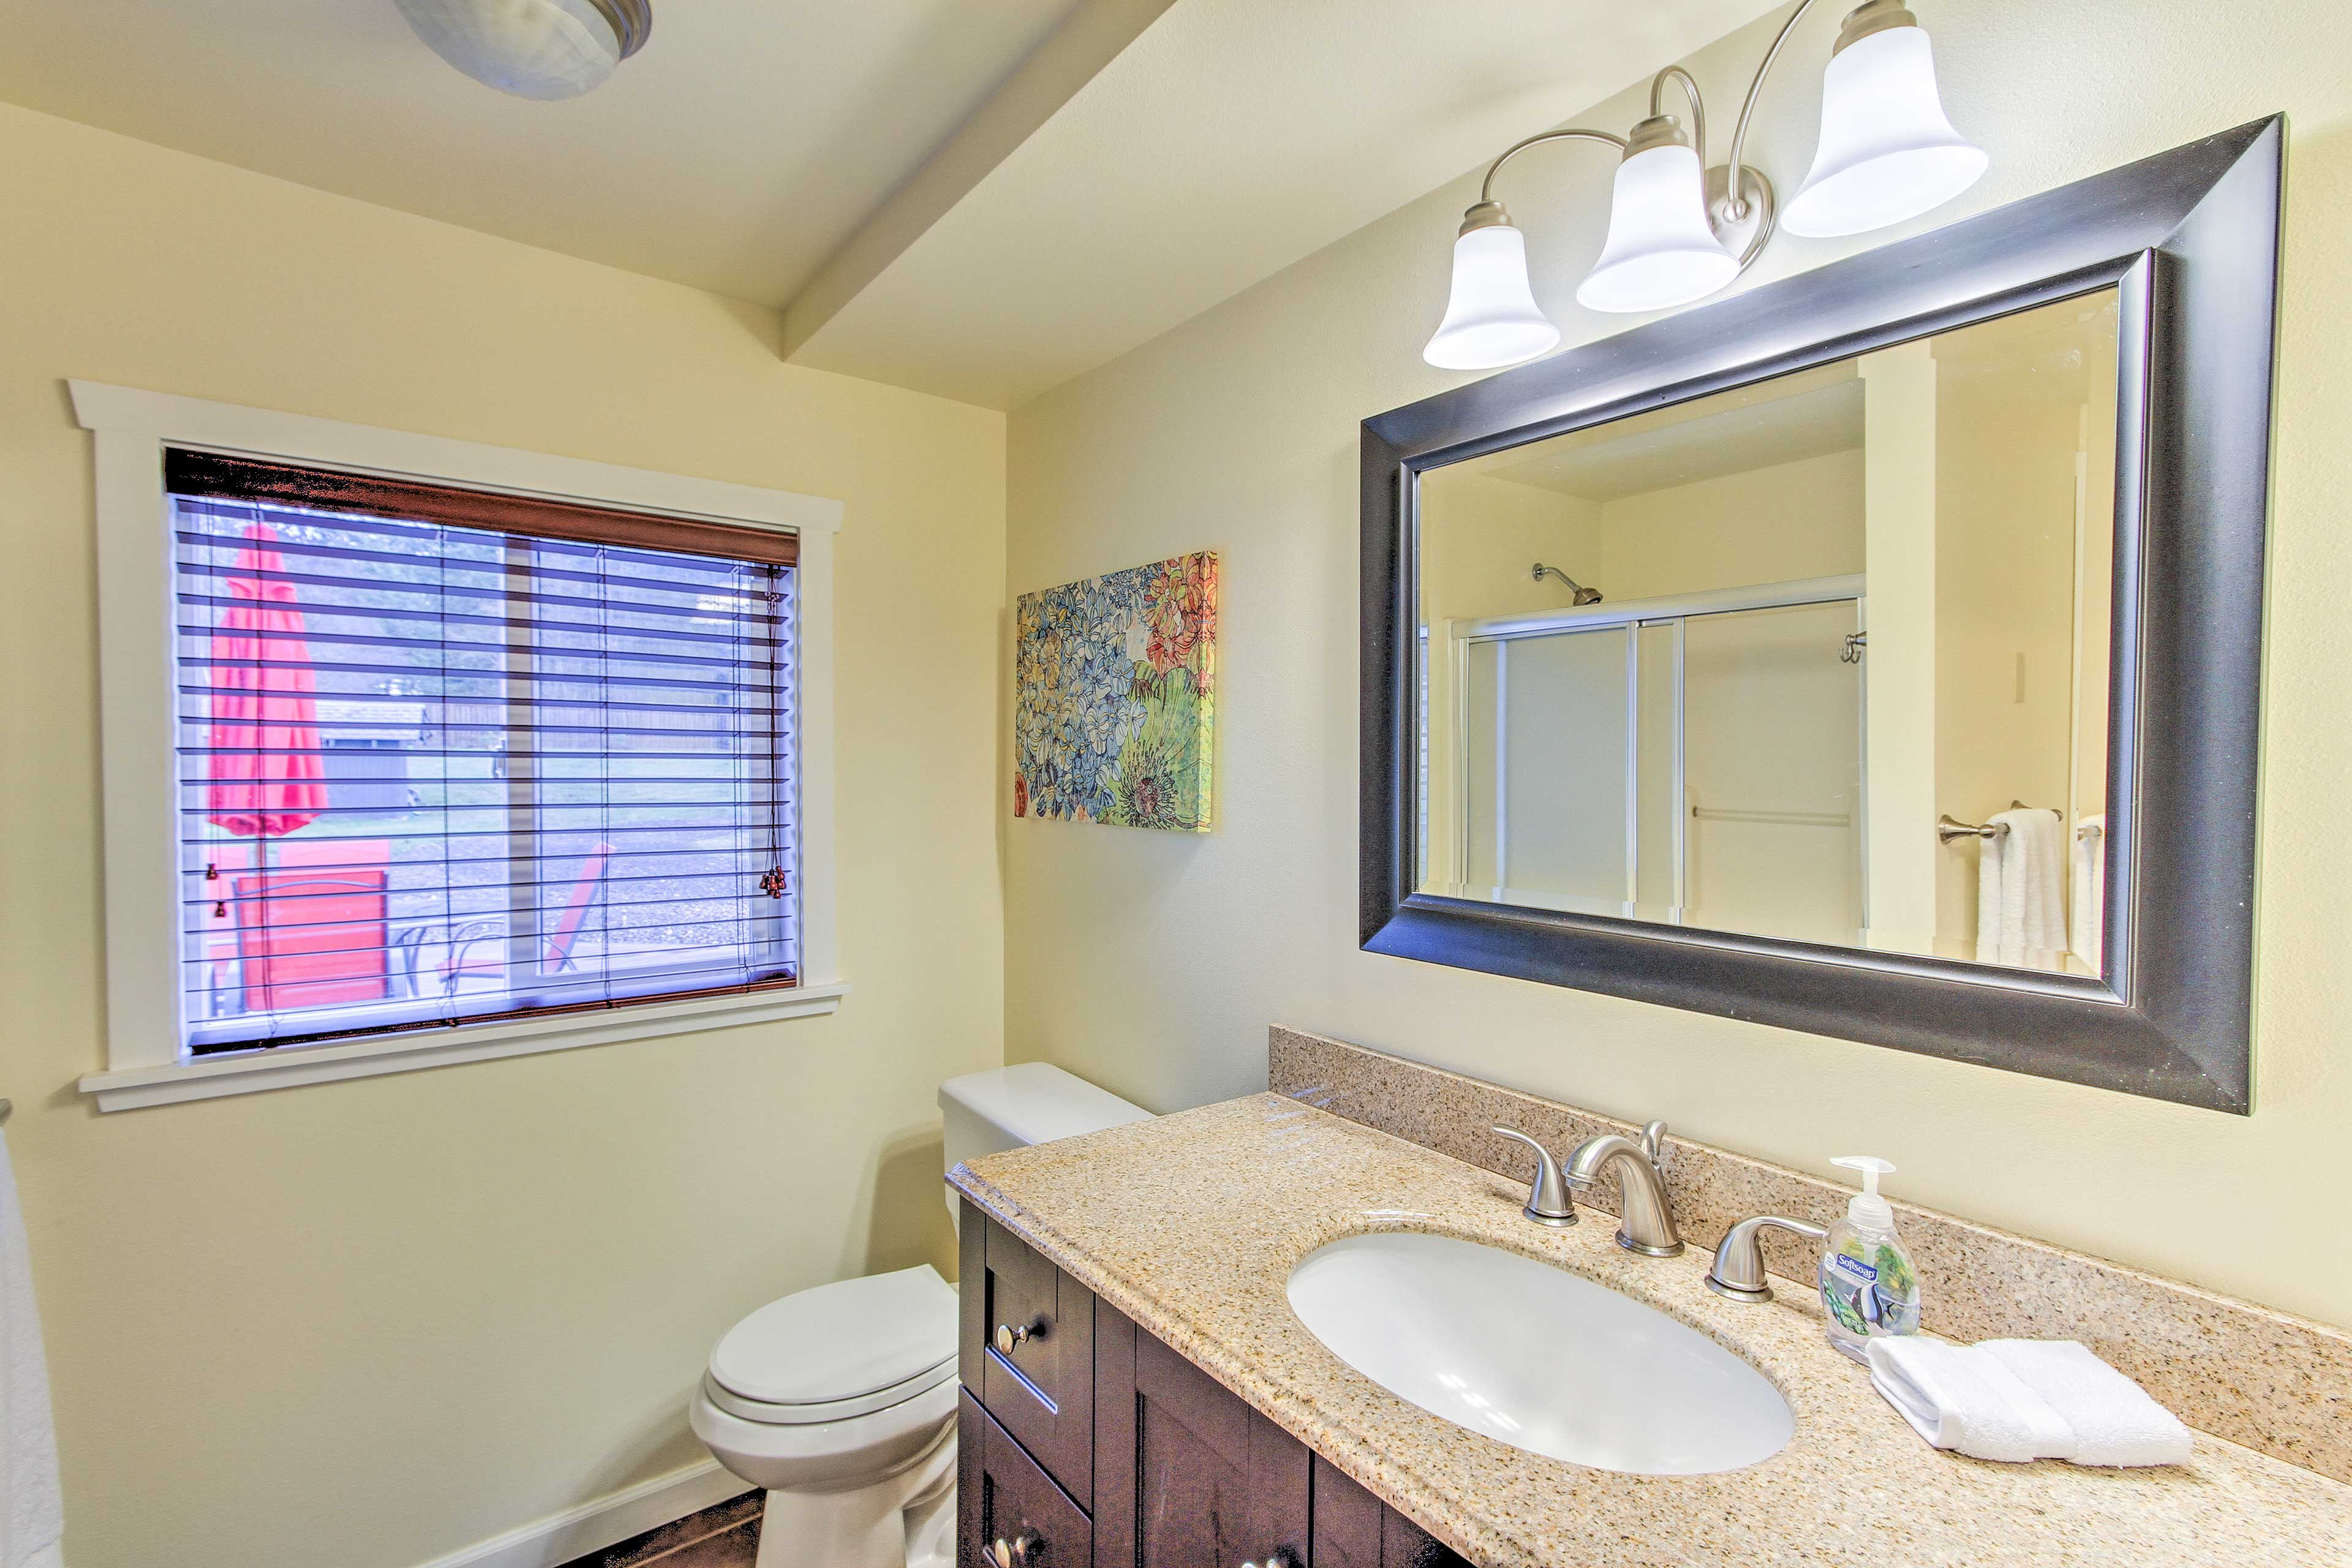 Rinse off in the walk-in shower of the first bathroom.